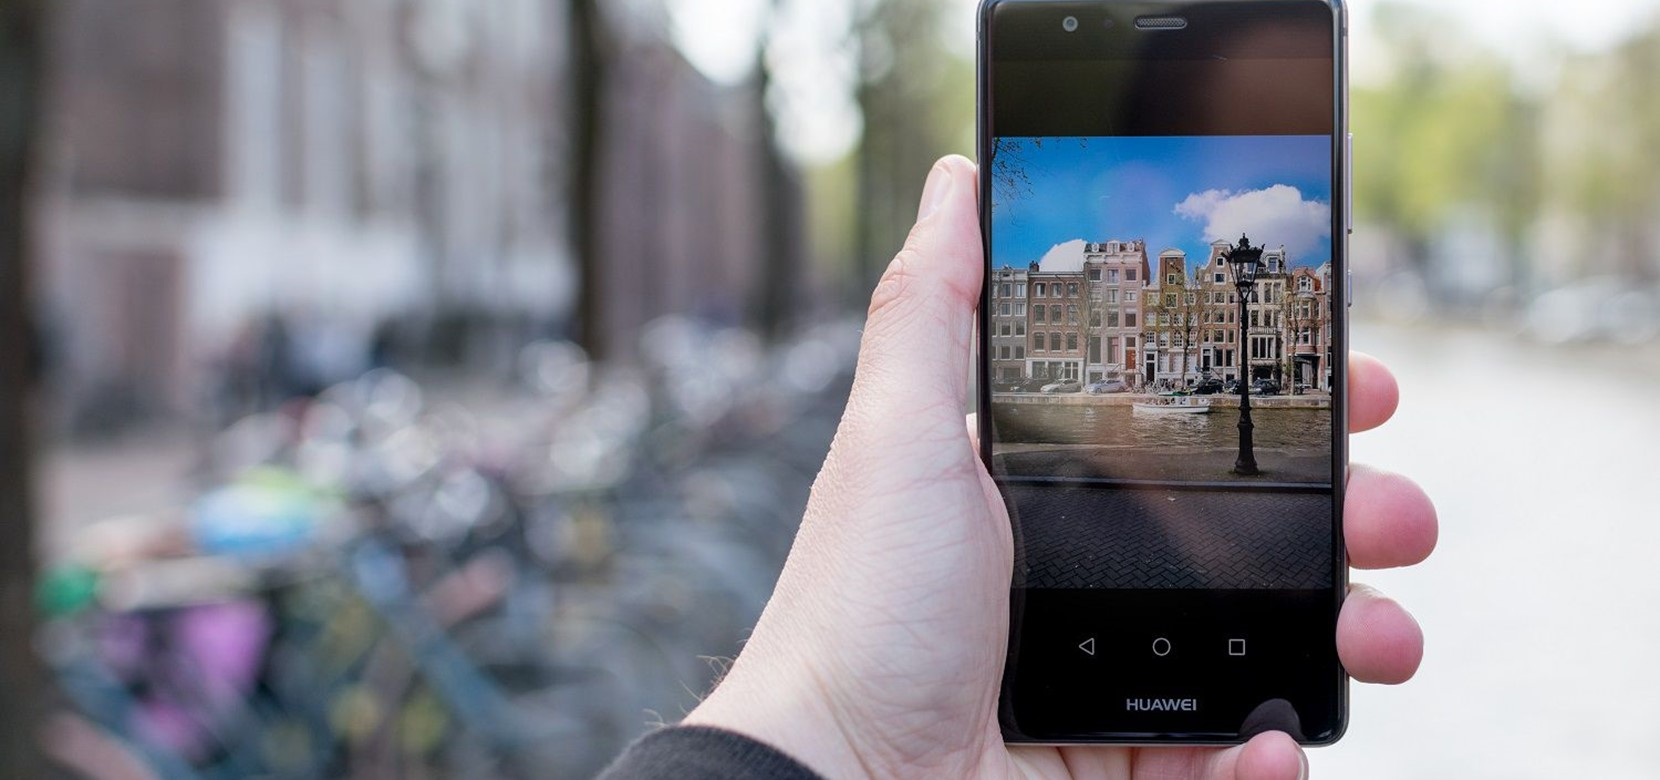 Join @Dutchie on the Mobile Photography Tour